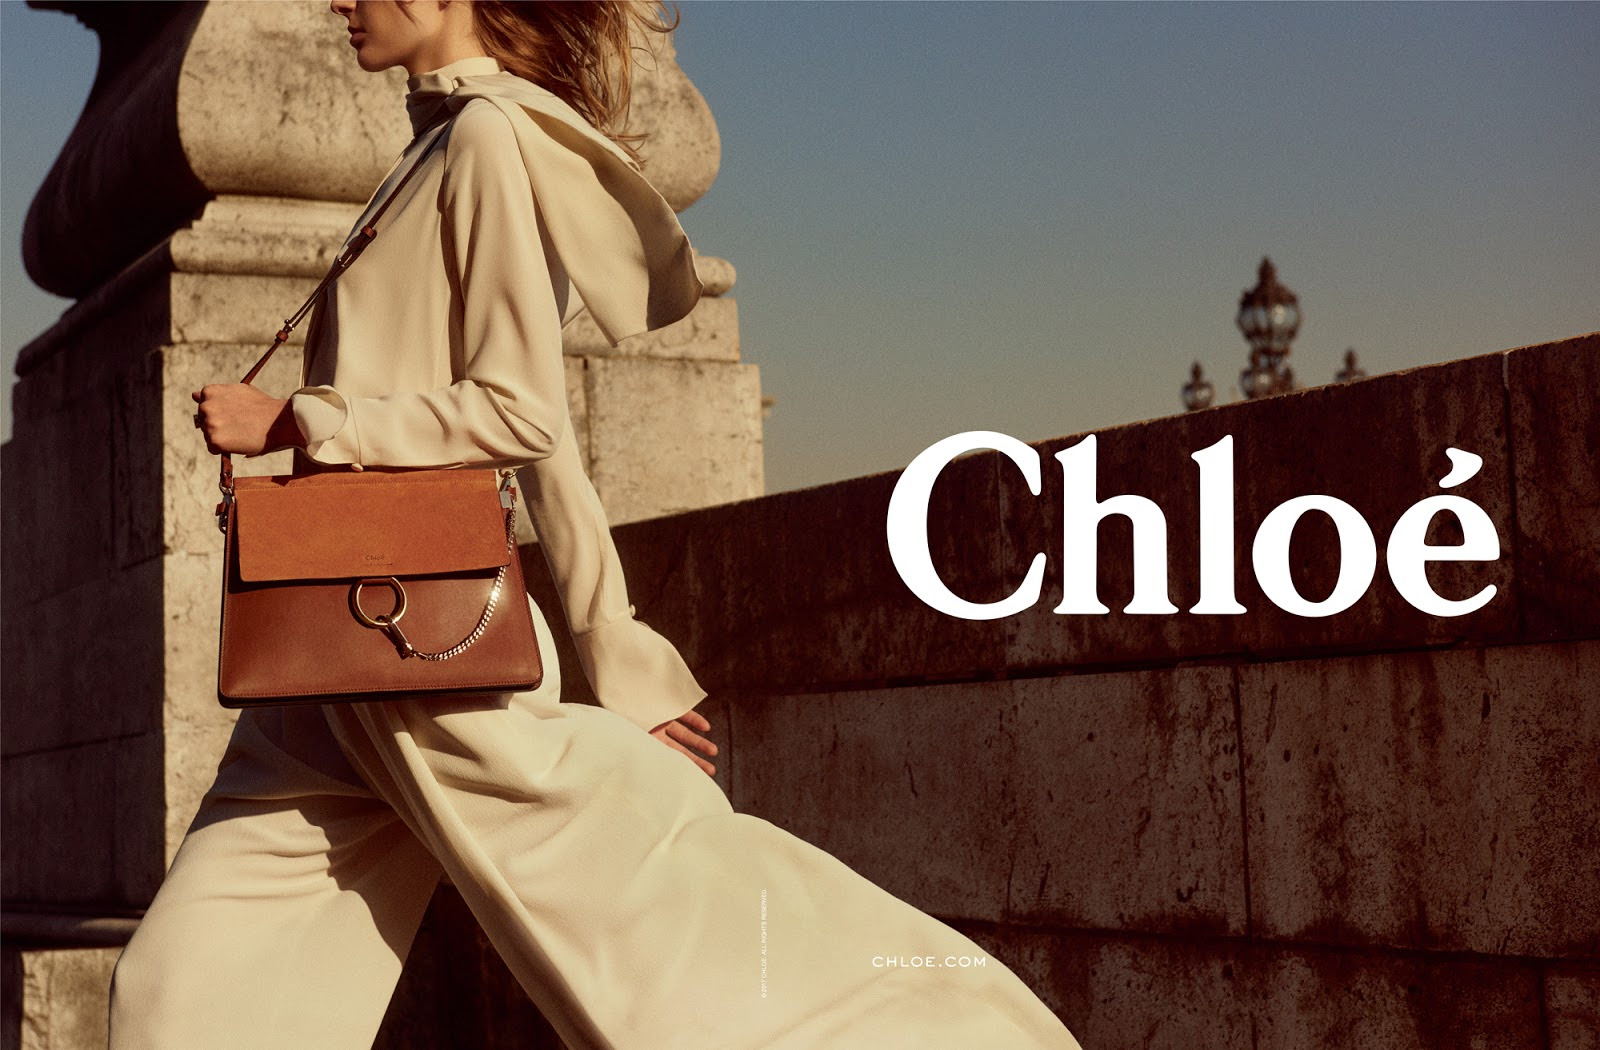 http://theimpression.com/wp-content/uploads/Chloe-fall-2017-ad-campaign-the-impression-18.jpg